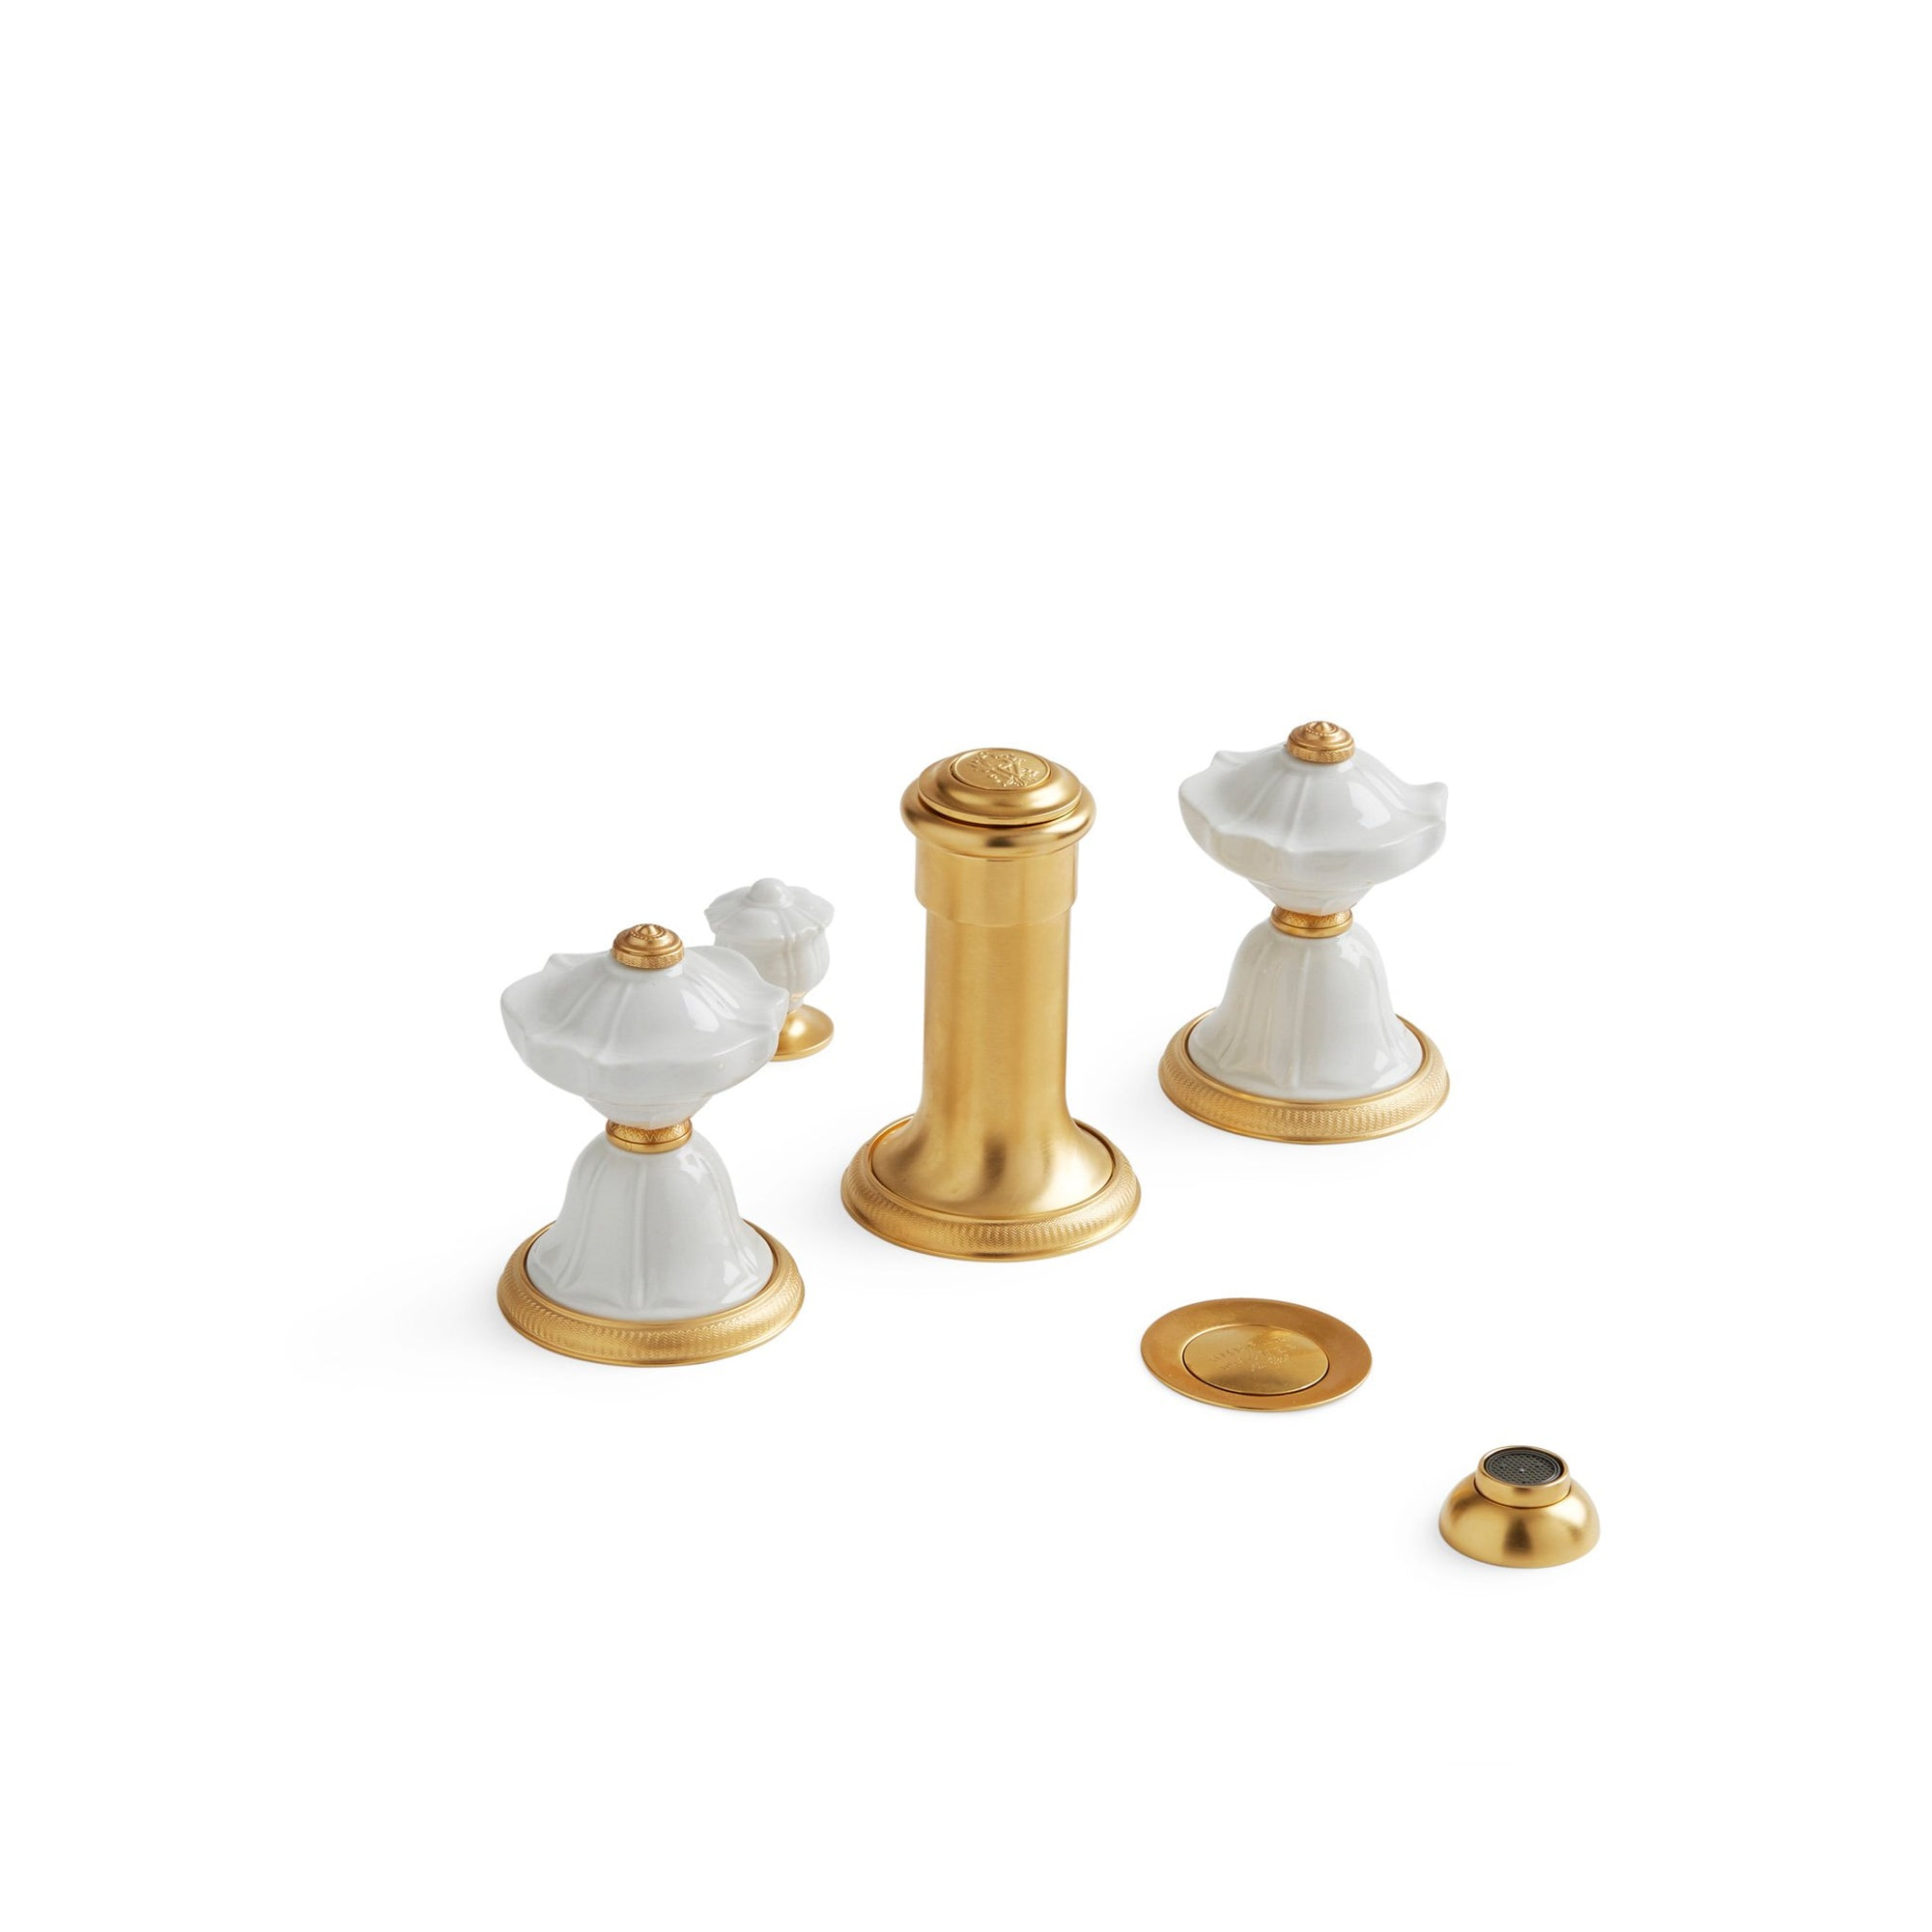 1097BDT-4H-03WH-GP Sherle Wagner International Scalloped Ceramic Knob Bidet Set in Gold Plate metal finish